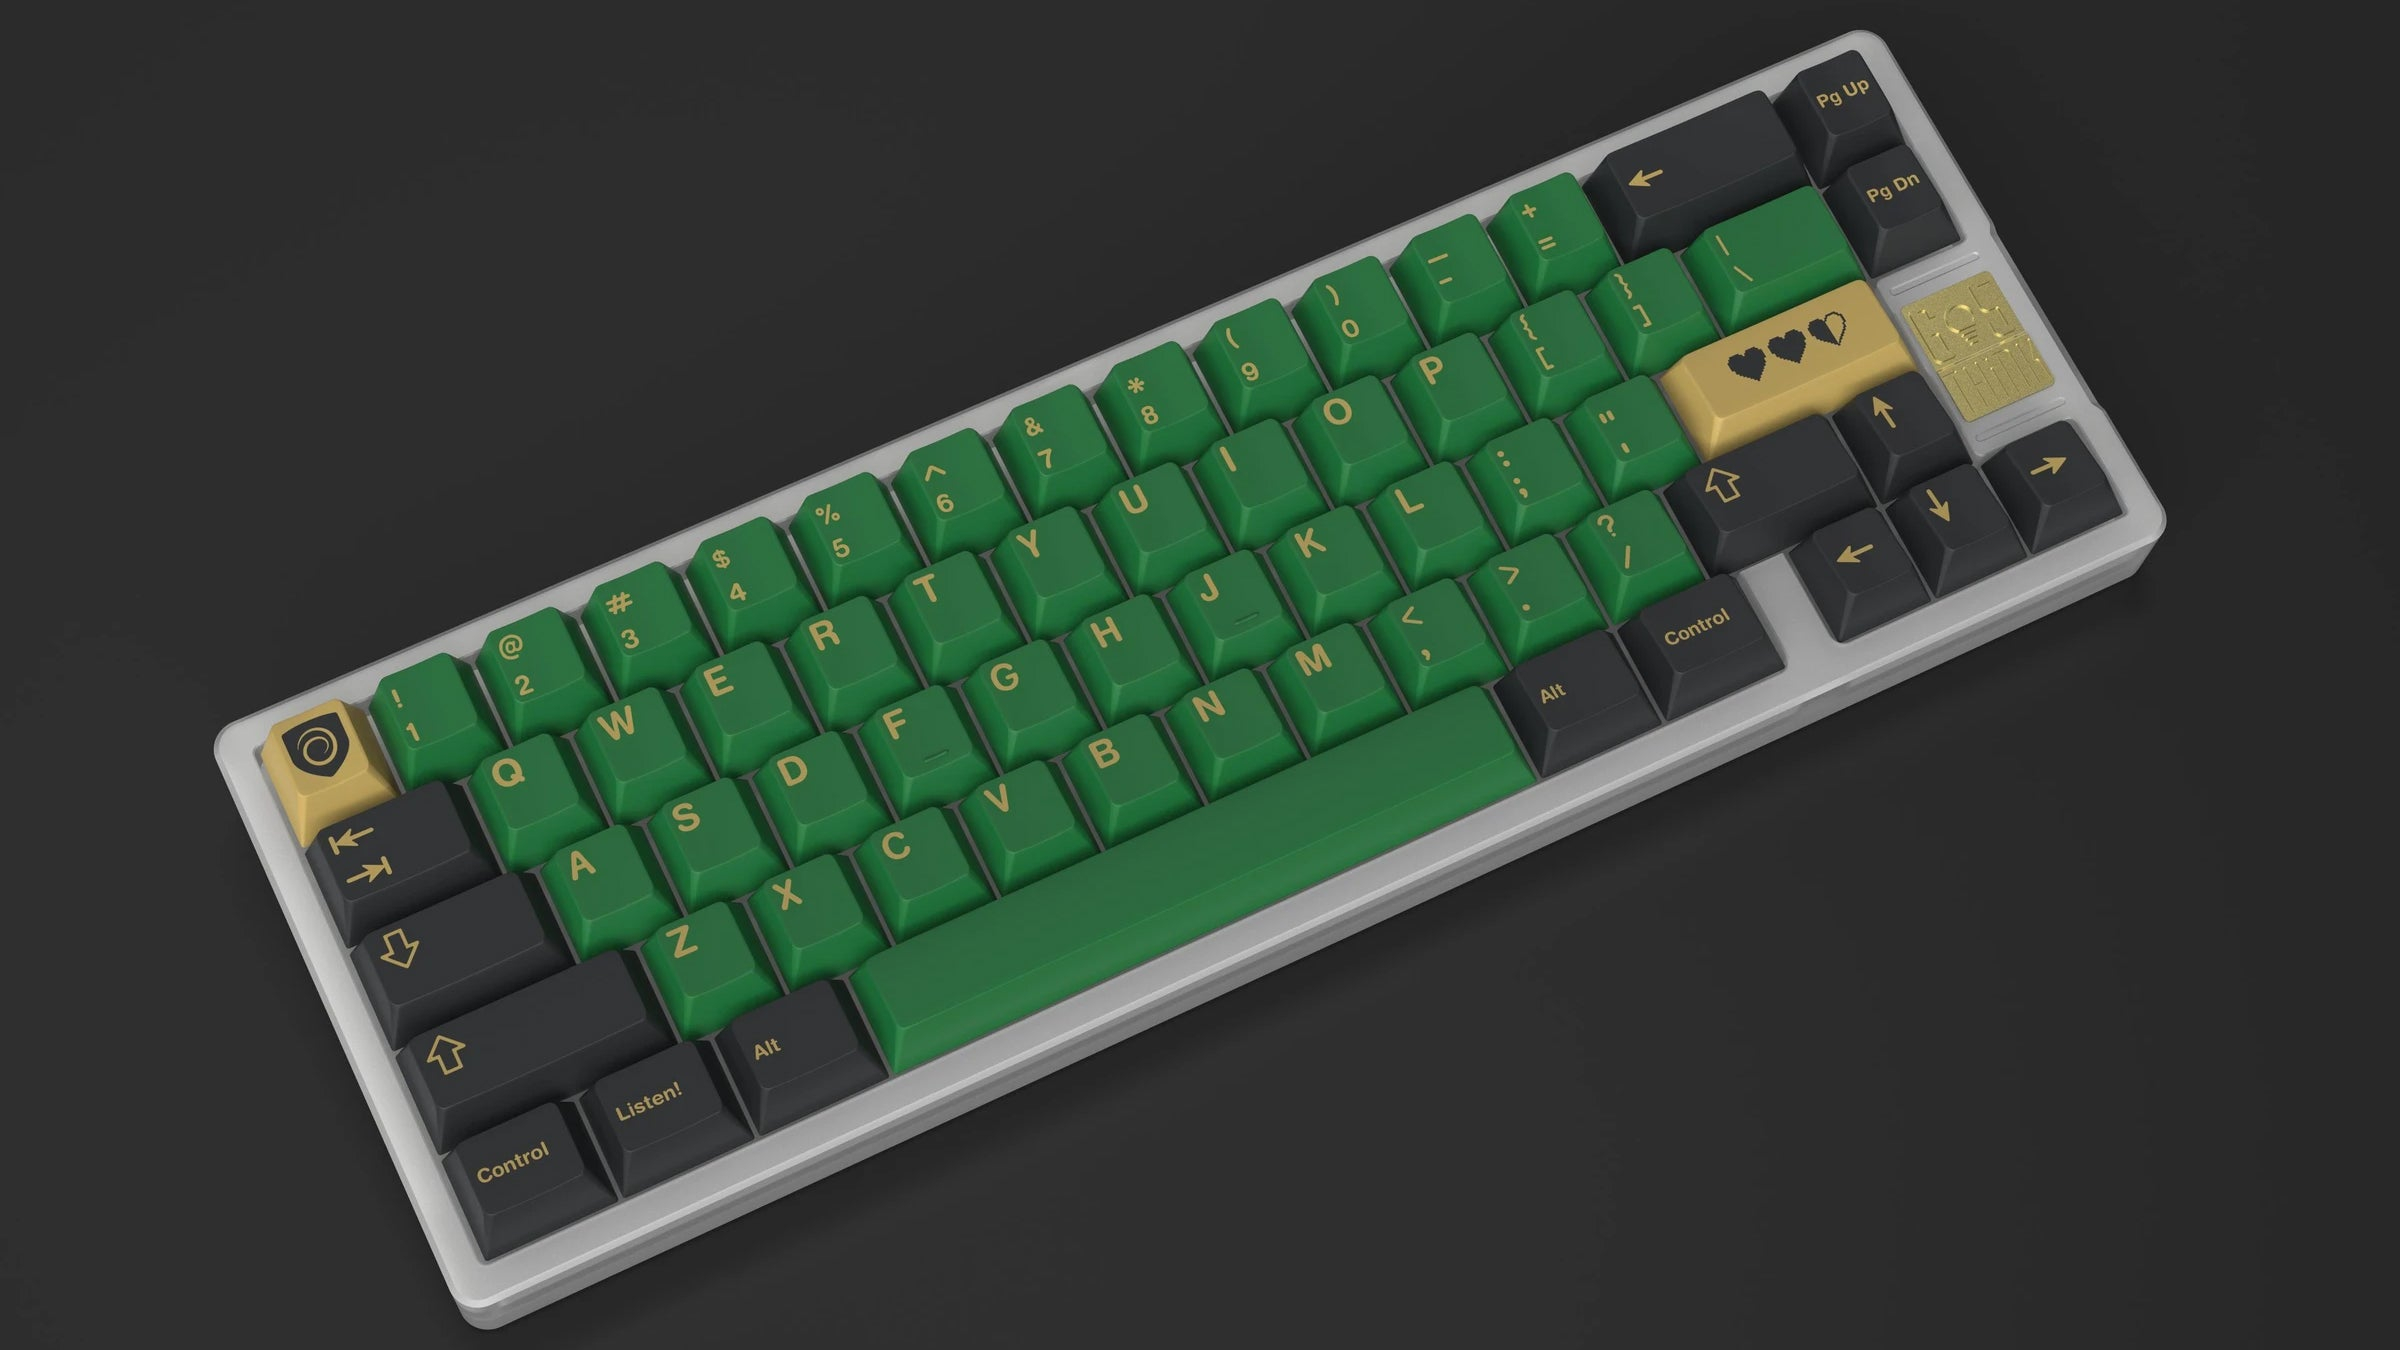 Legend Of Zelda Keycaps For Heroic Keyboards